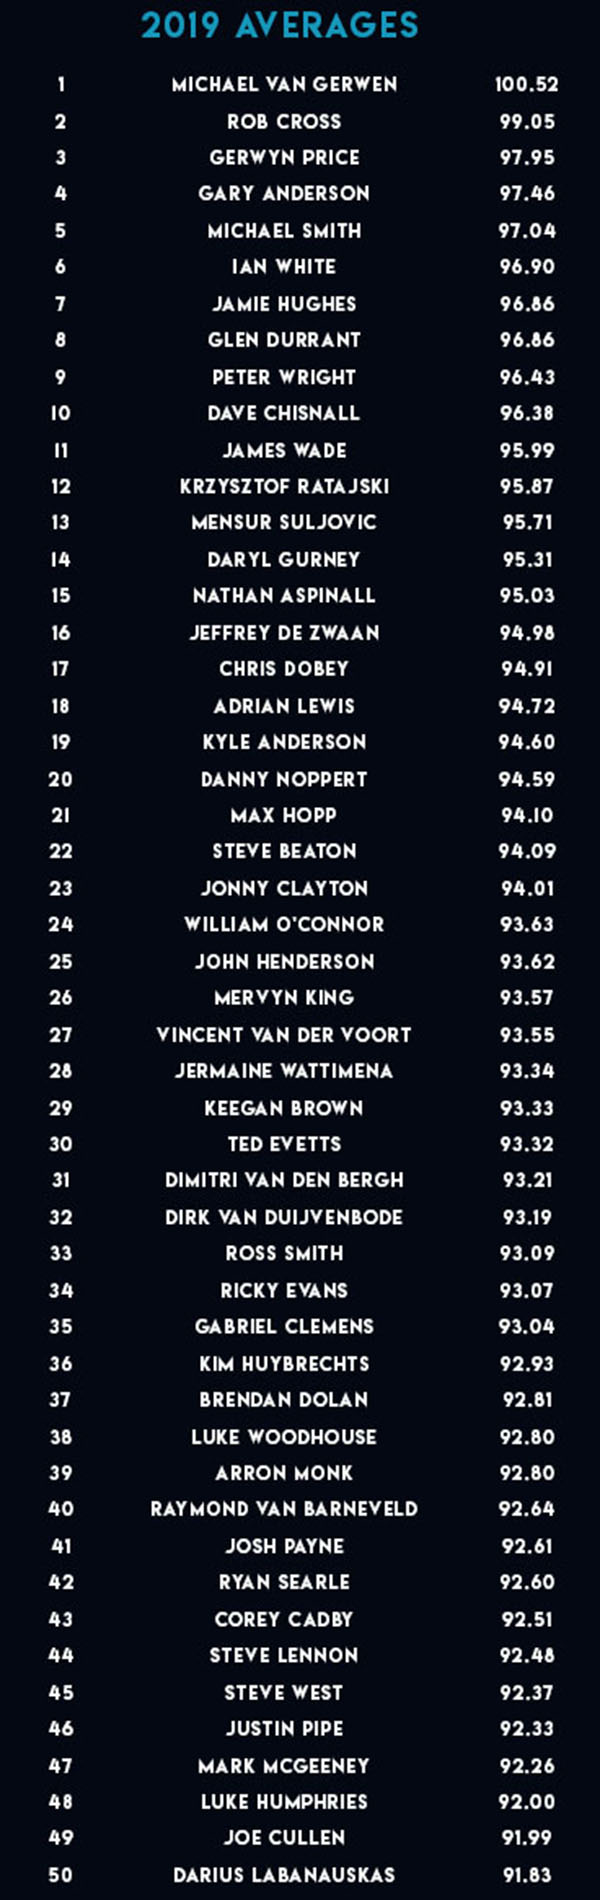 PDC averages 2019 (PDC)